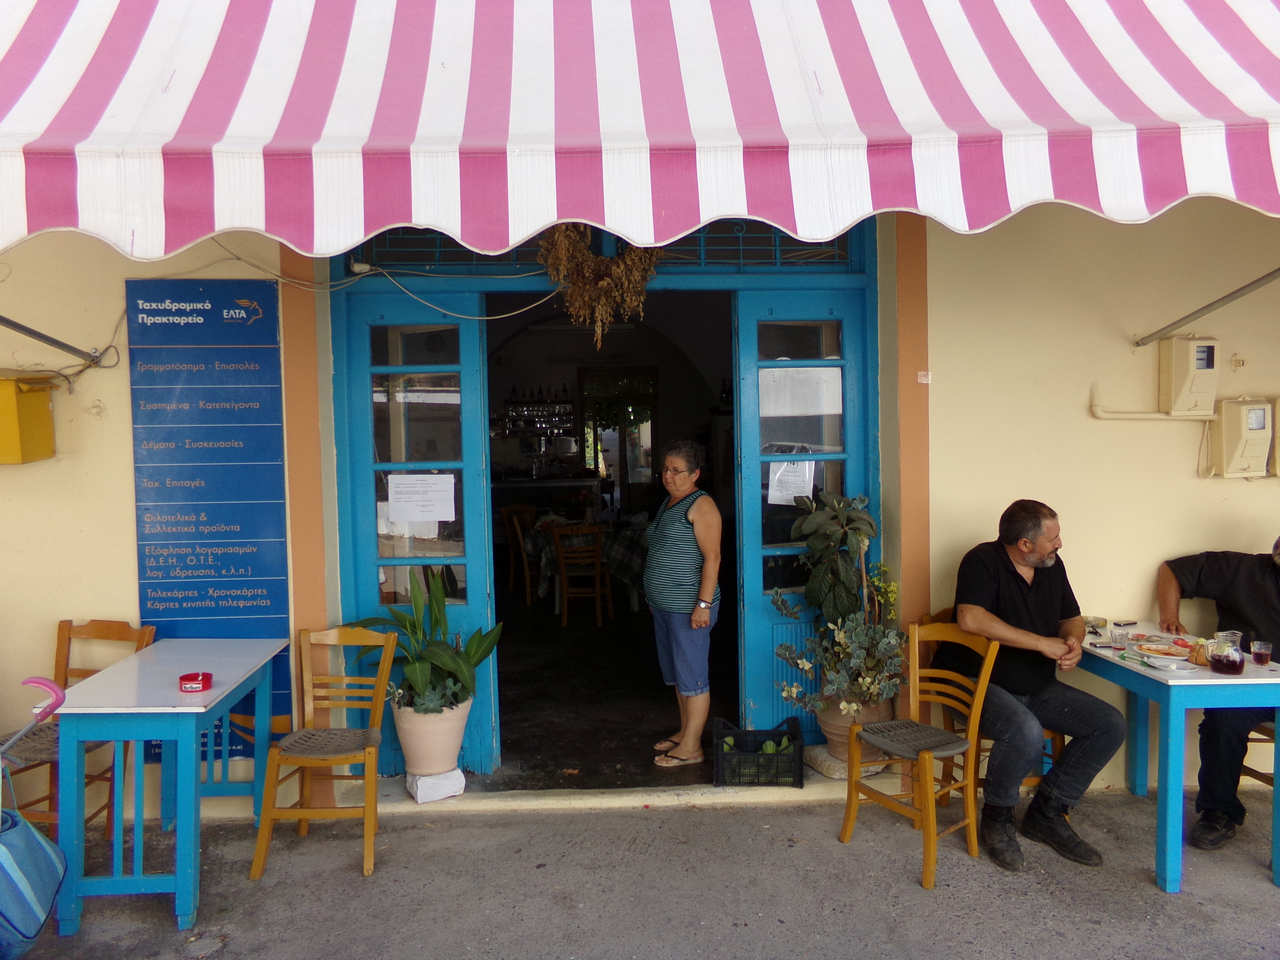 entrance-of-the-fantastic-amazing-tavern-post-office-in-the-village-margarites-rethymno-crete